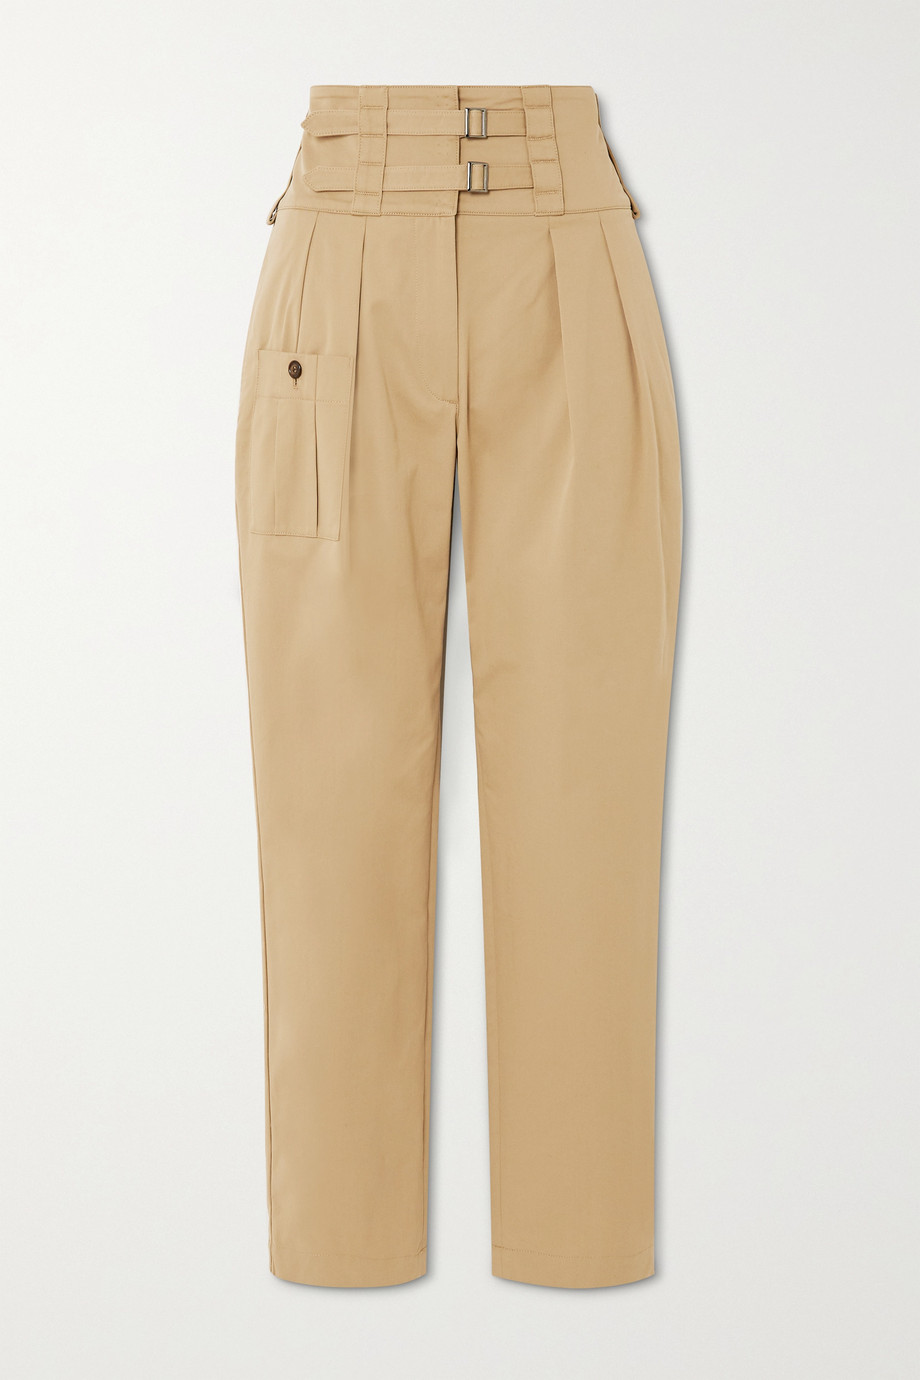 Dolce & Gabbana Buckled cotton-blend twill tapered pants